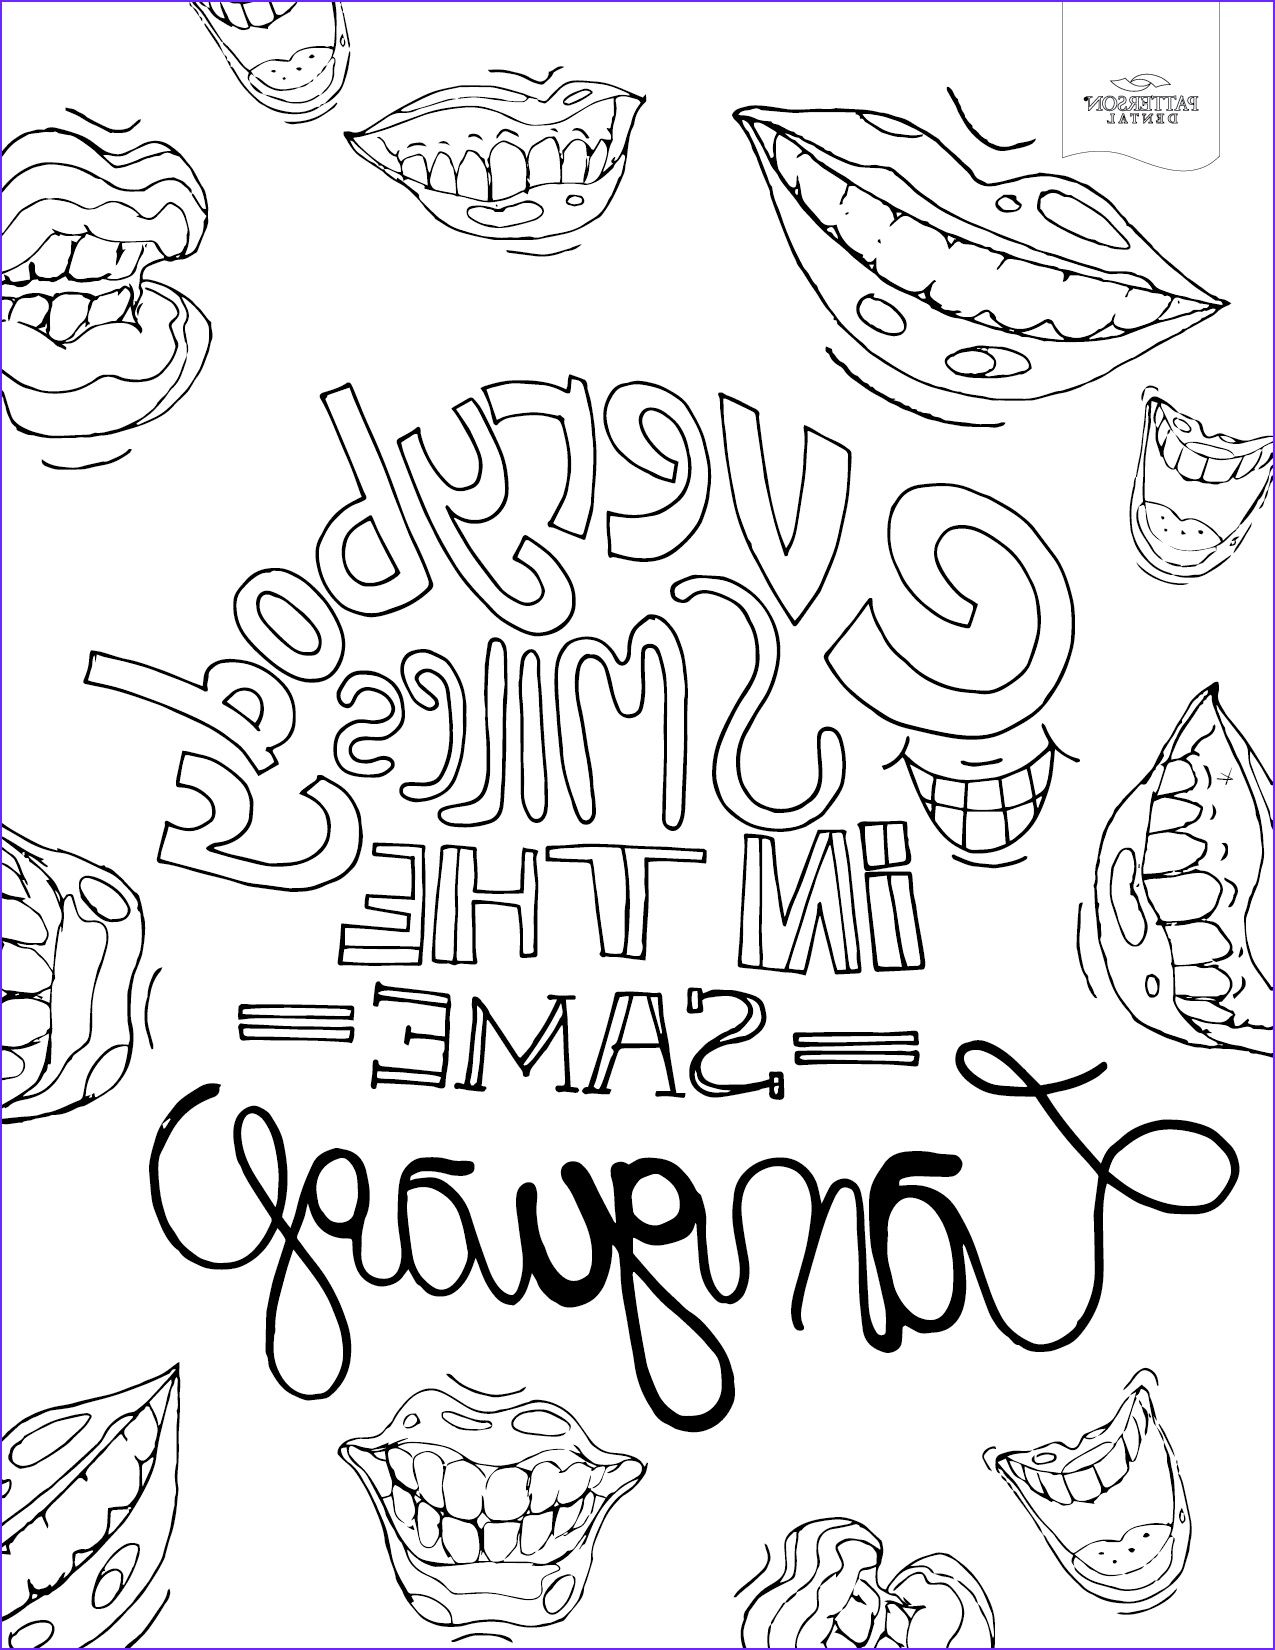 Adult Coloring Pages to Print Best Of Images 10 toothy Adult Coloring Pages [printable] F the Cusp